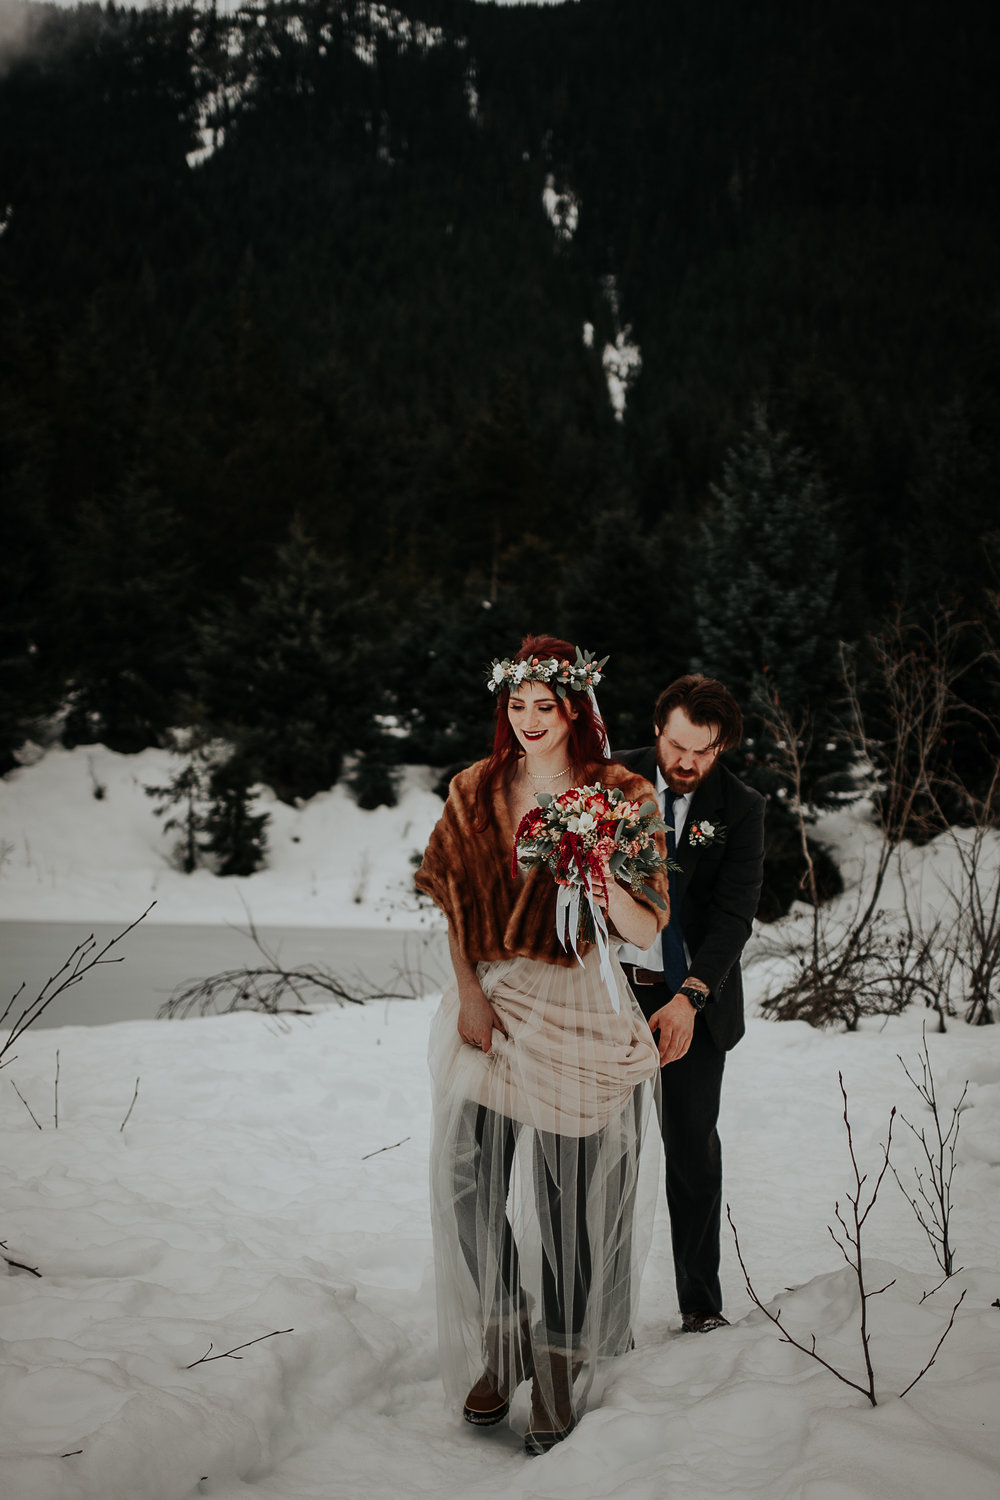 gold-creek-pond-elopement-wedding-megan-gallagher-photography (120 of 195).jpg